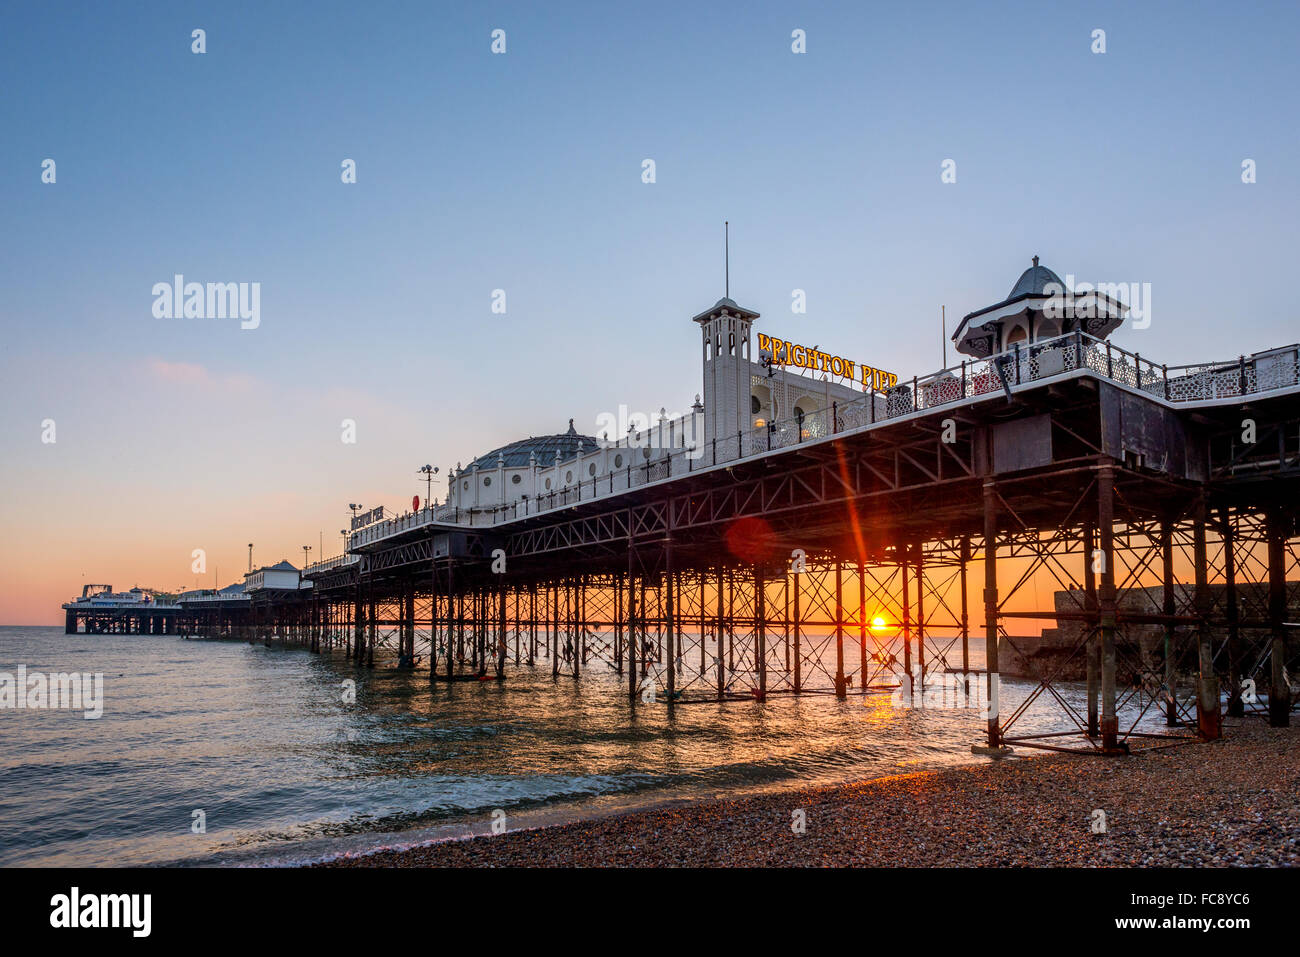 The sun sets on the horizon behind the Palace Pier, Brighton. - Stock Image